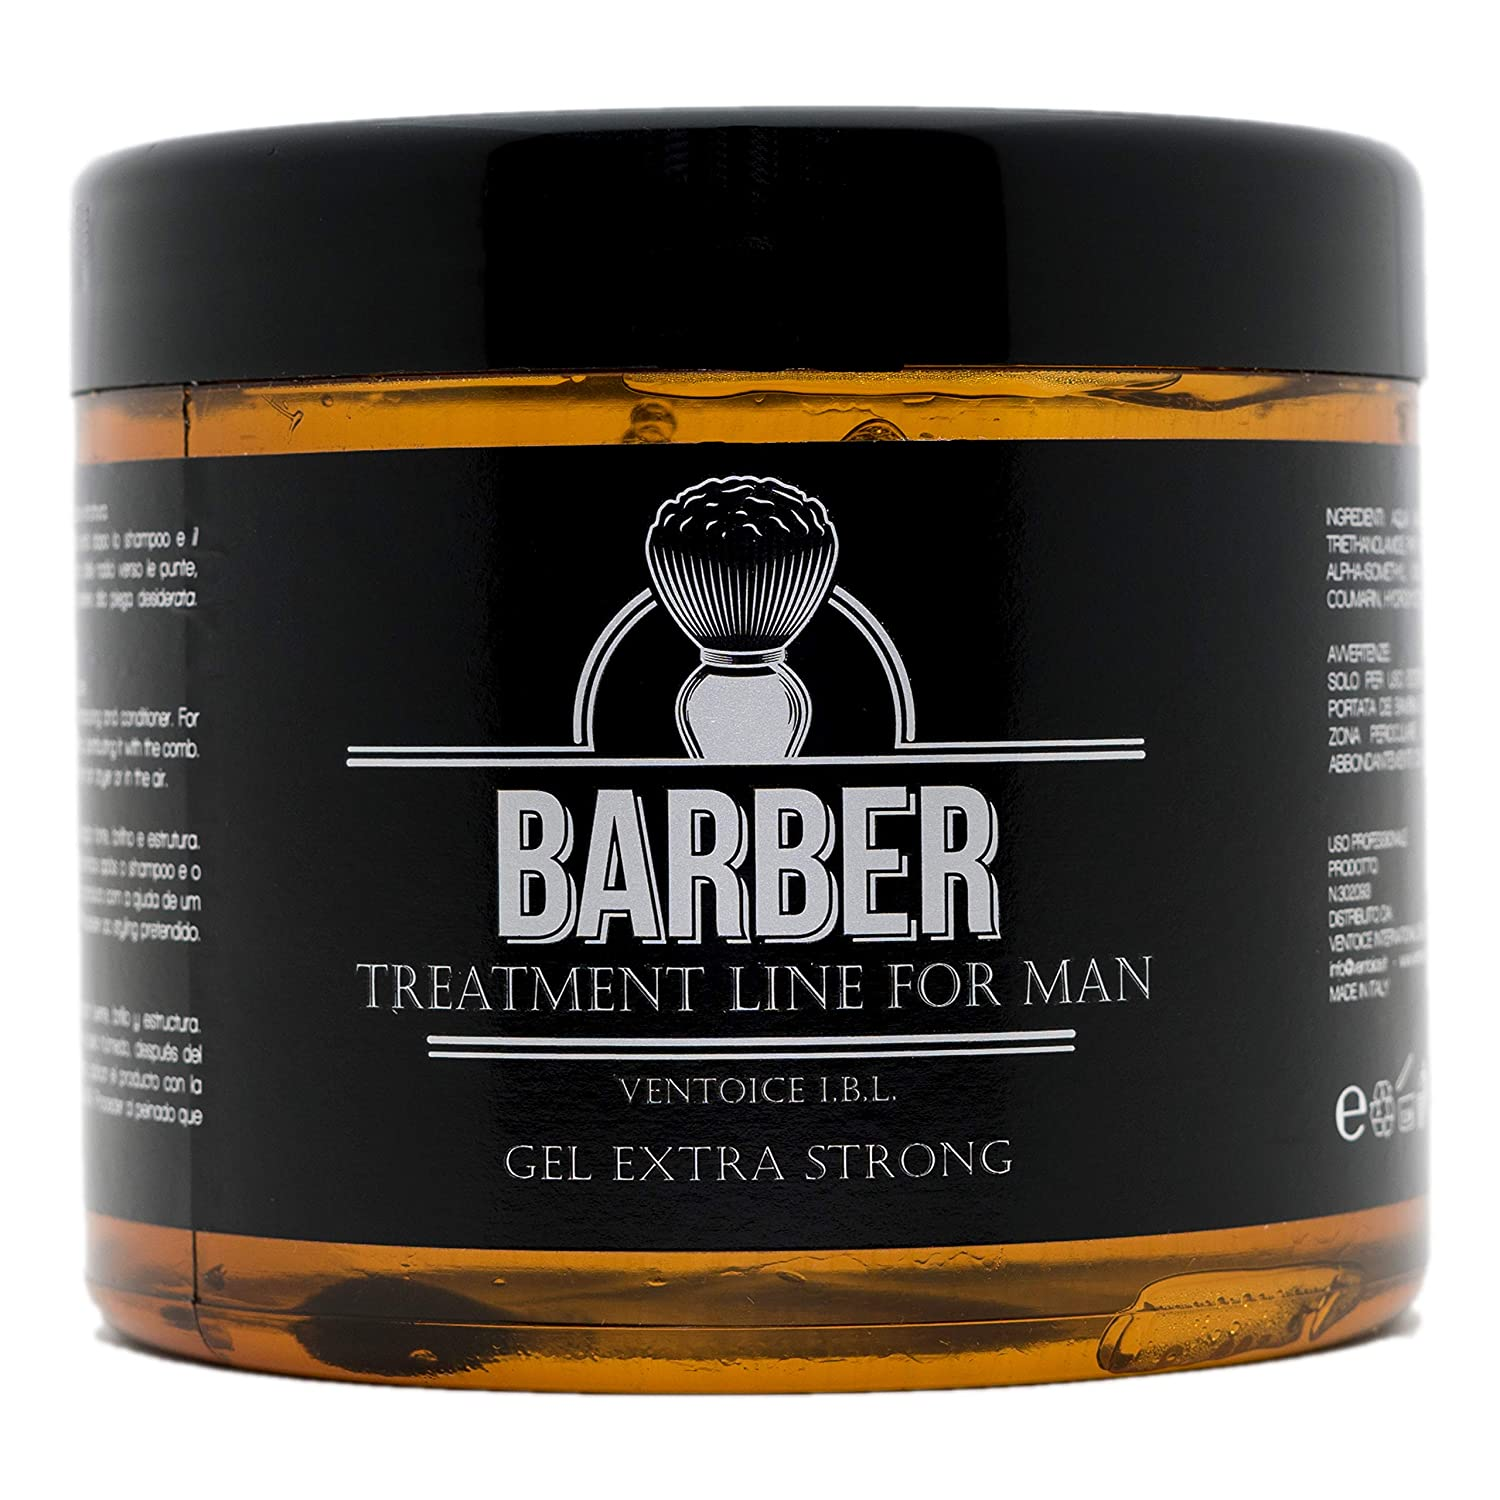 BARBER - GEL EXTRA STRONG A TENUTA EXTRA FORTE NON APPESANTISCE NO RESIDUI 100% NATURALE 500 ML FORMATO PROFESSIONALE 100% MADE IN ITALY VENTOICE I.B.L.